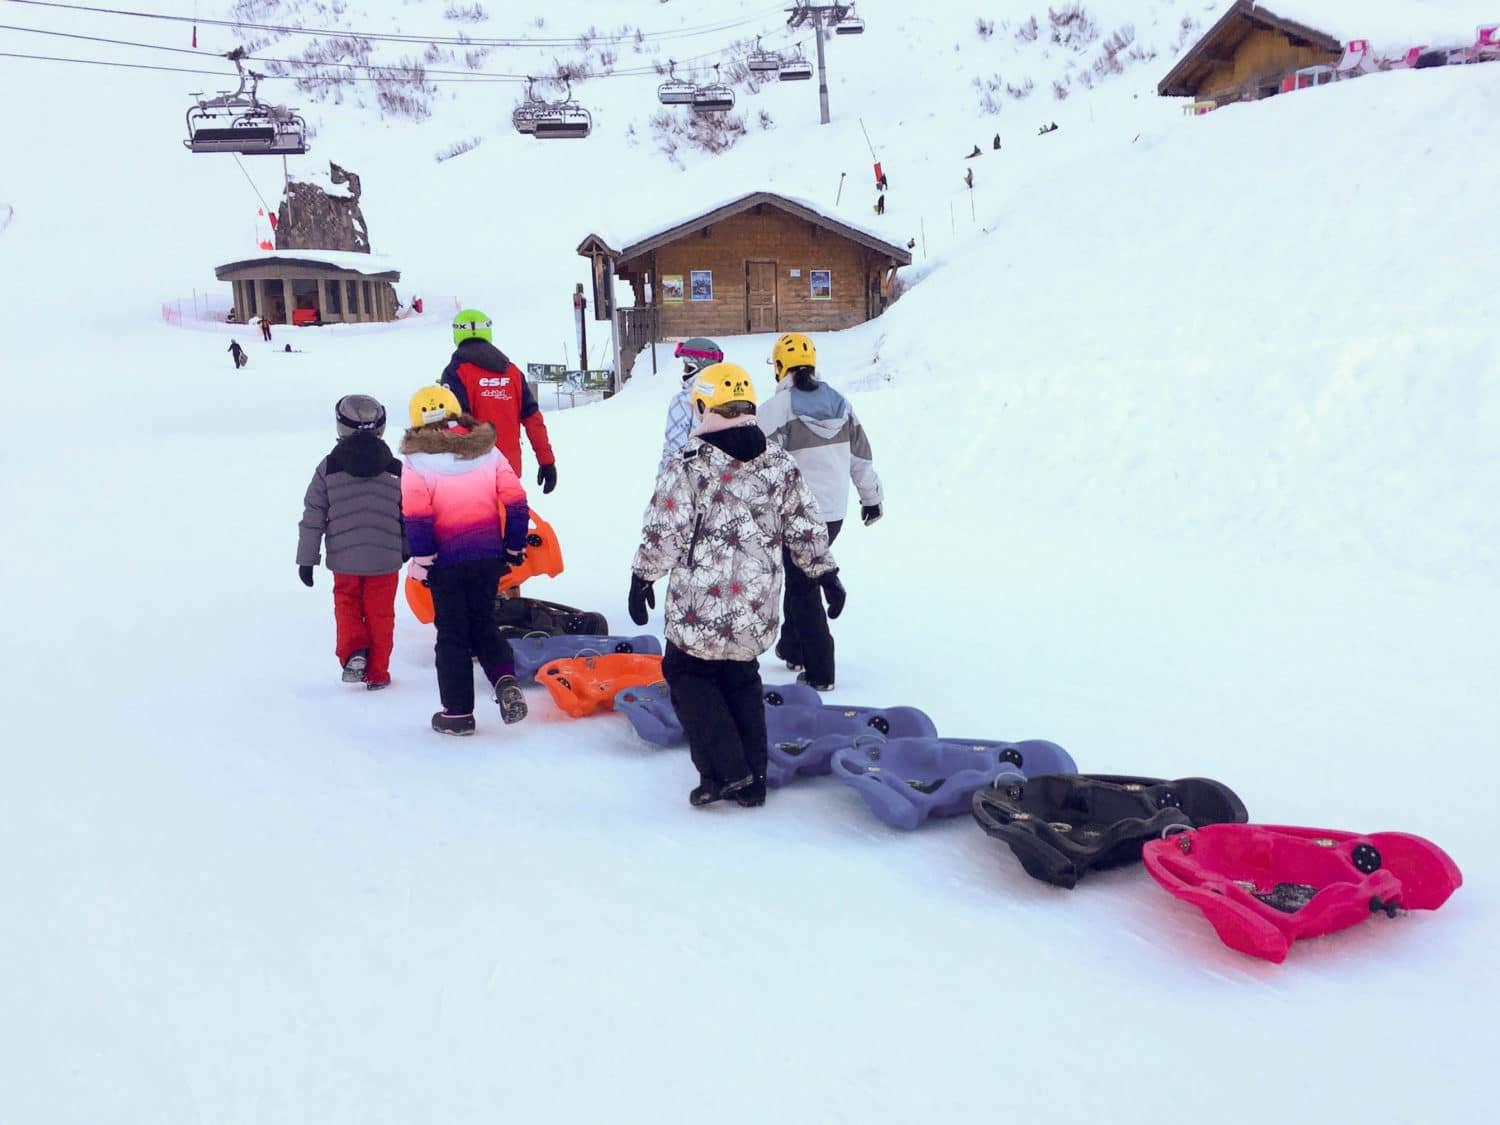 fun activities in the snow on the snake-gliss